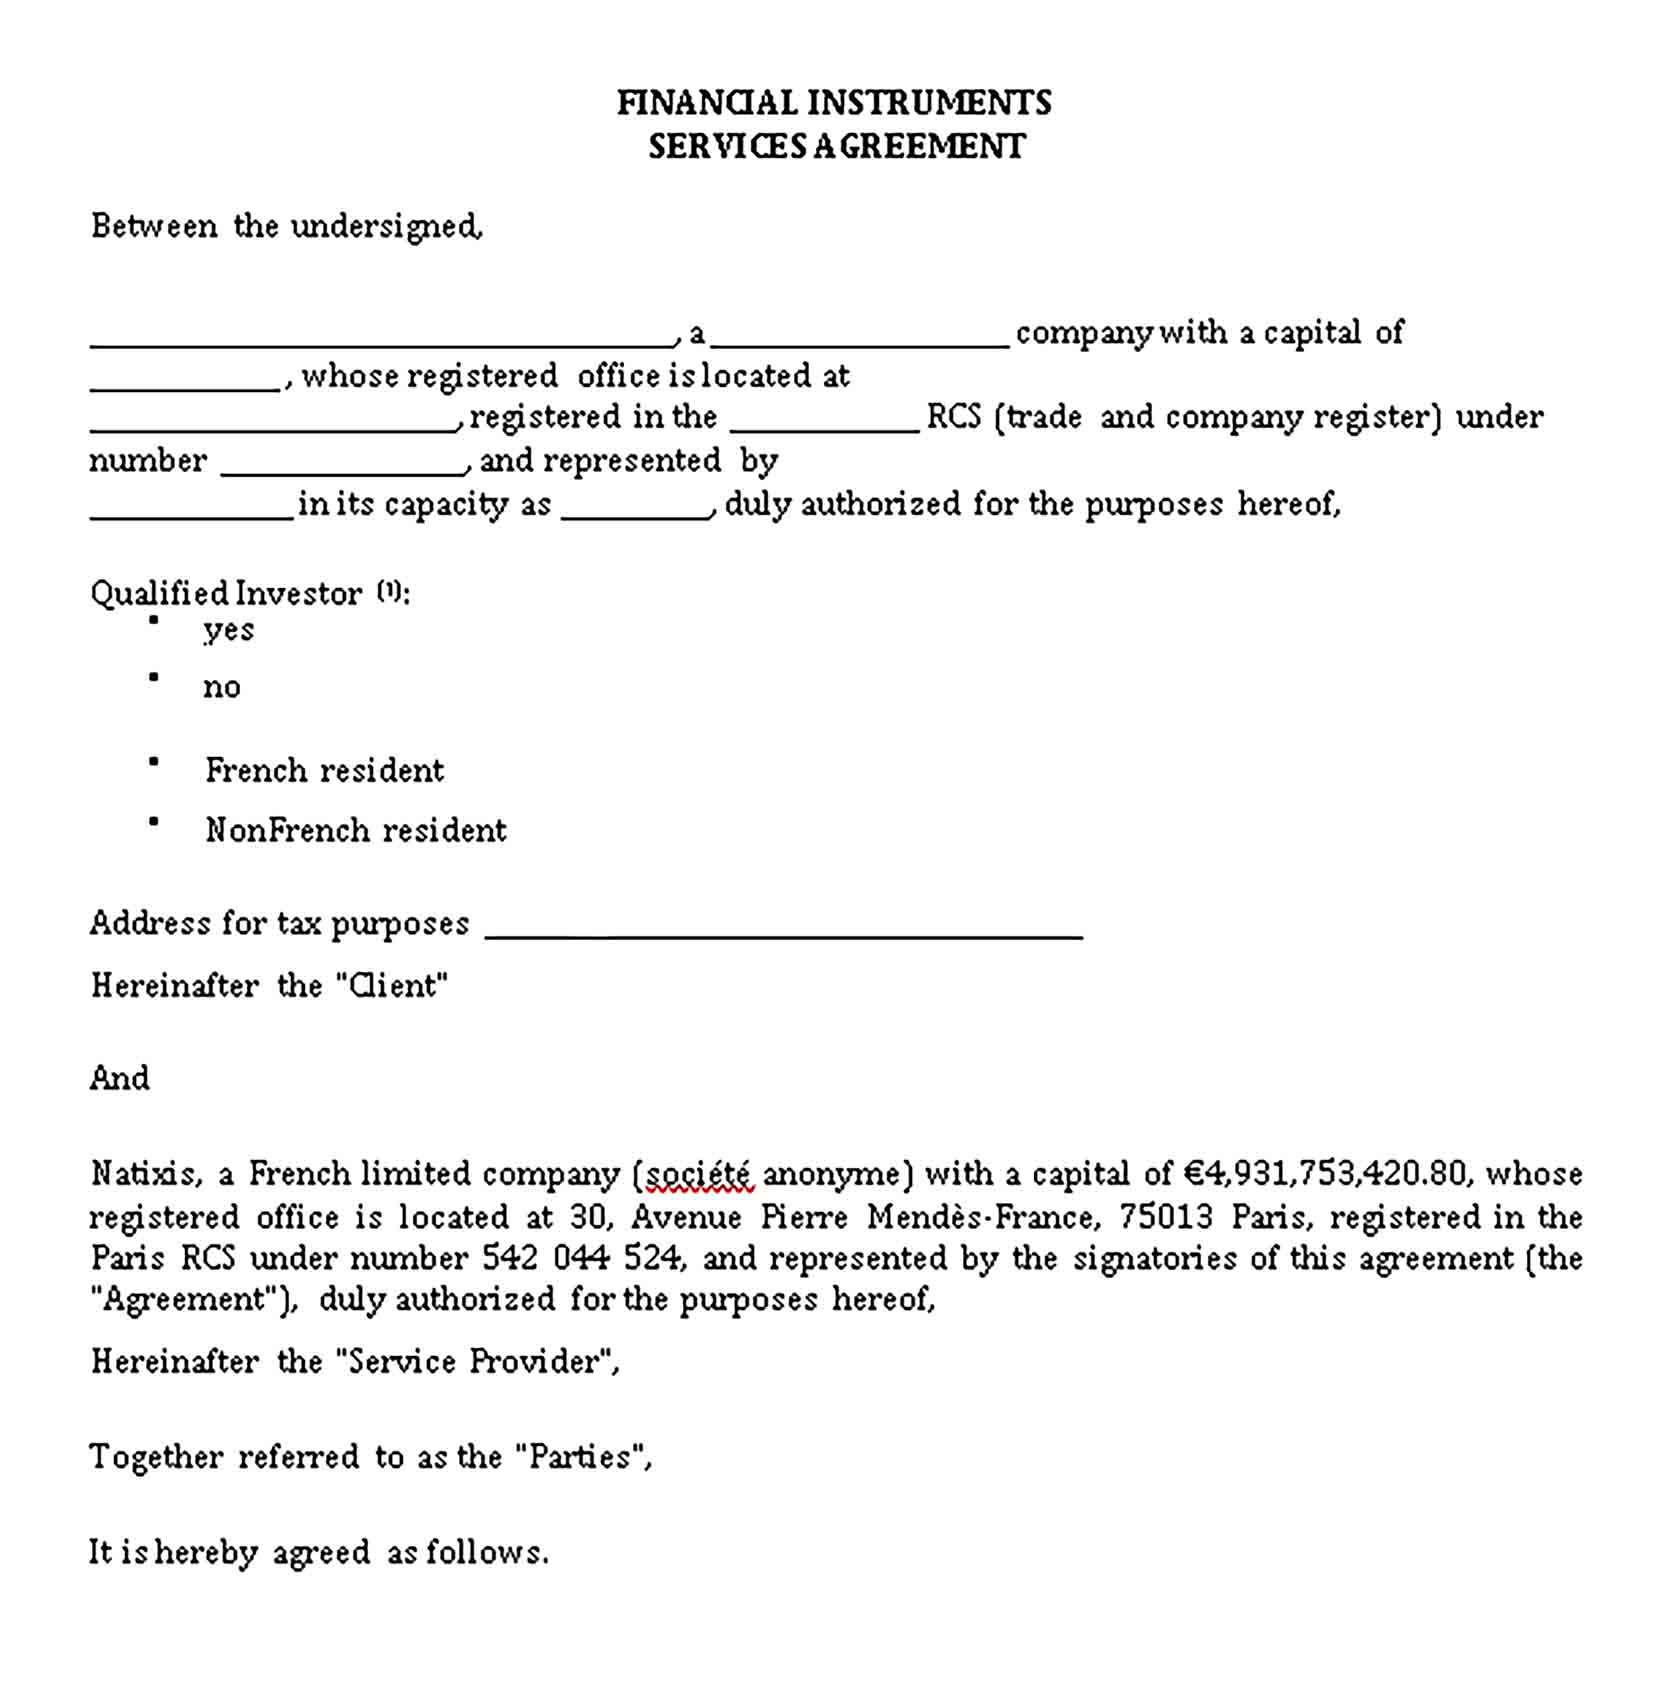 Templates Financial Instruments Services Agreement Sample